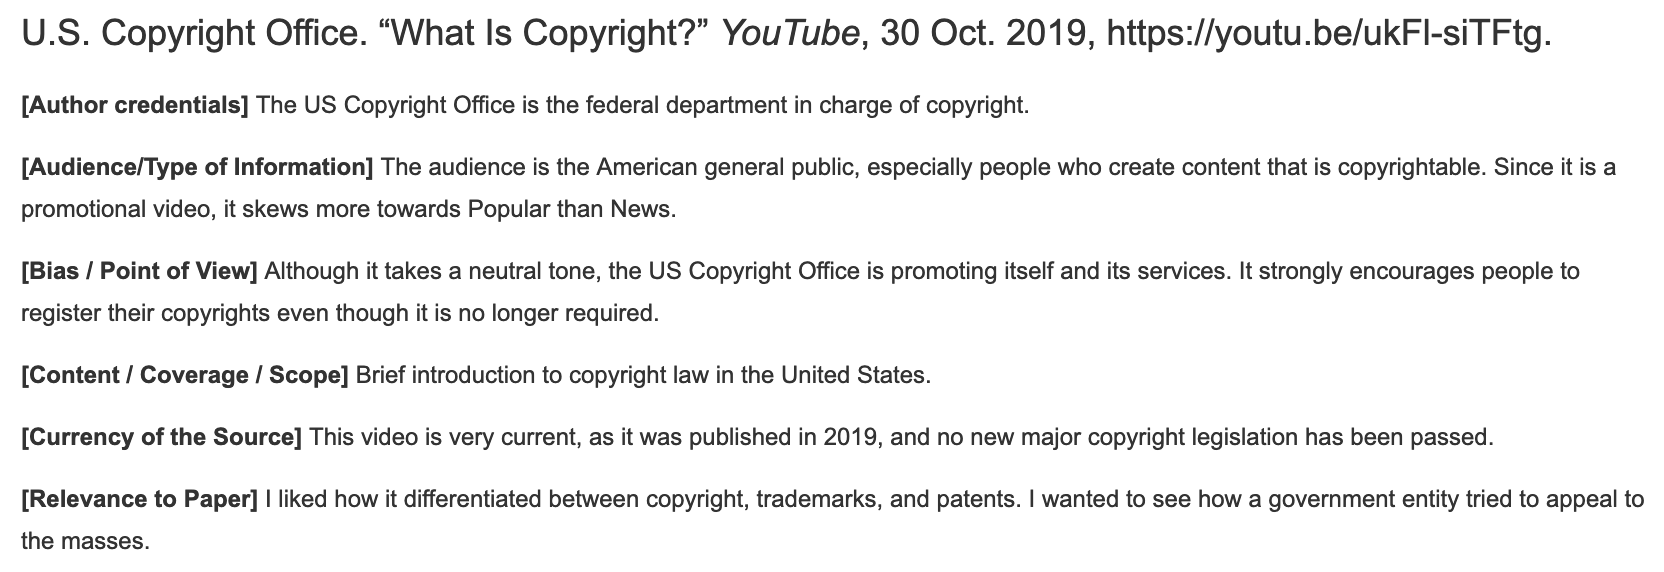 Sample annotation for What is Copyright video